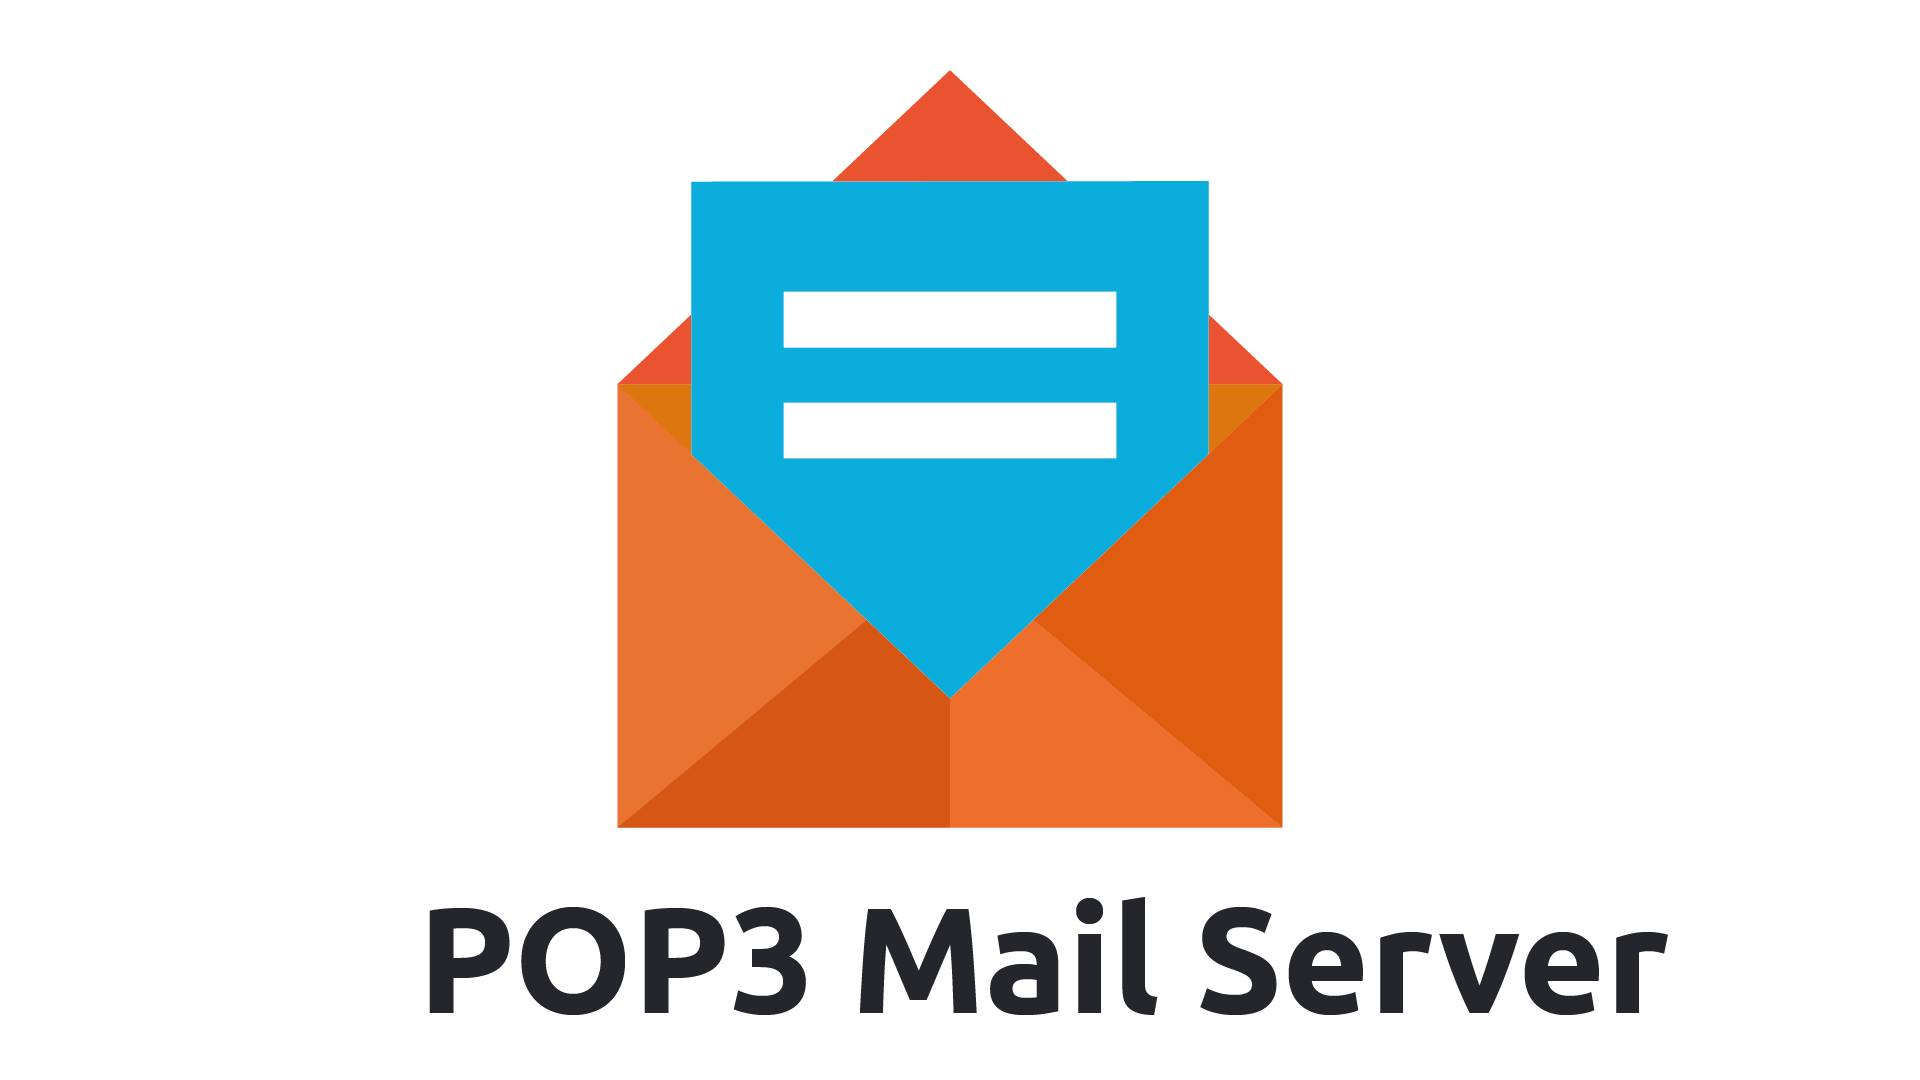 POP3 Mail Server Logo